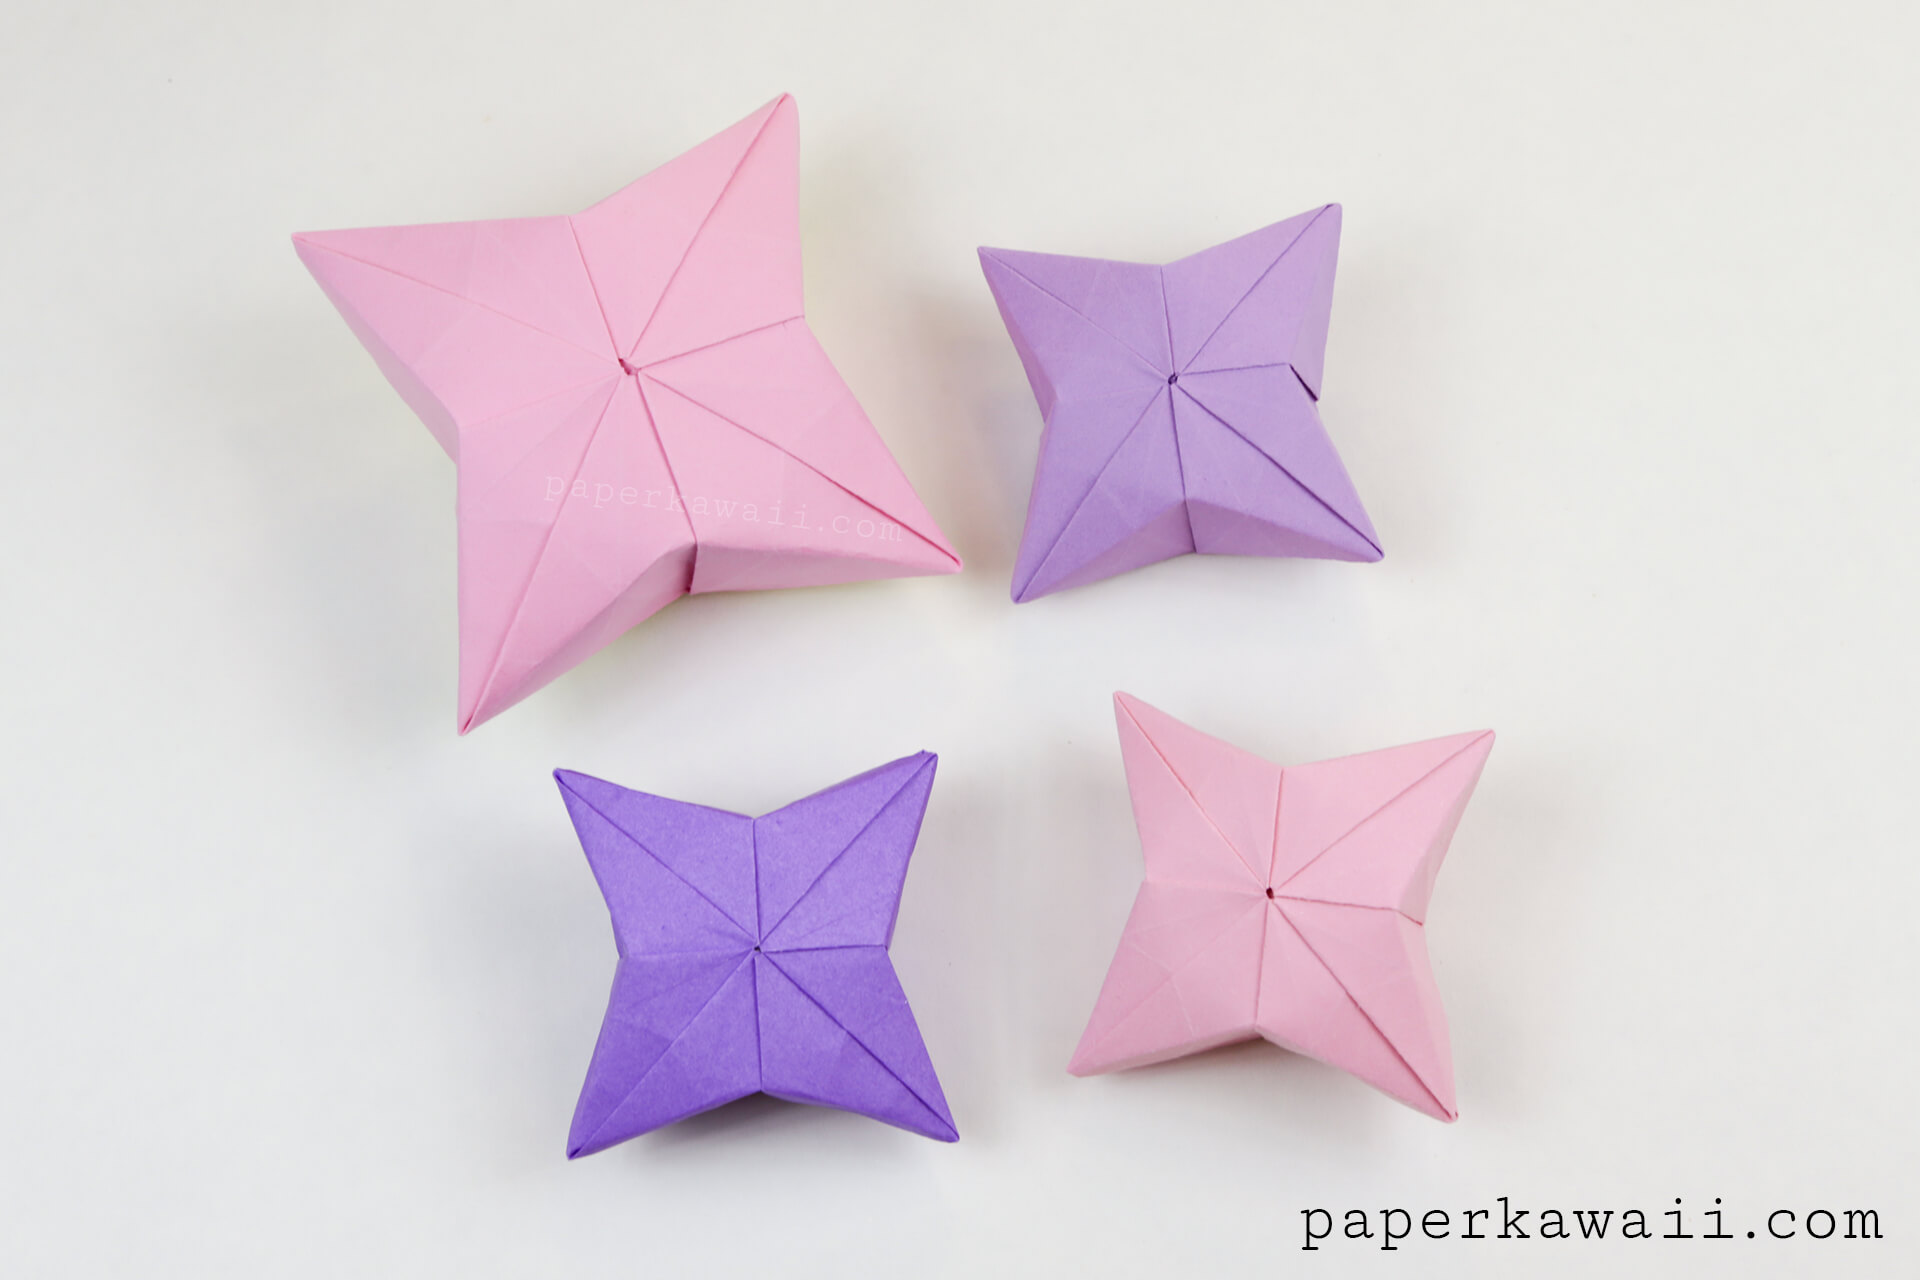 Buy 3D Origami Platonic Solids & More Book Online at Low Prices in ... | 1280x1920